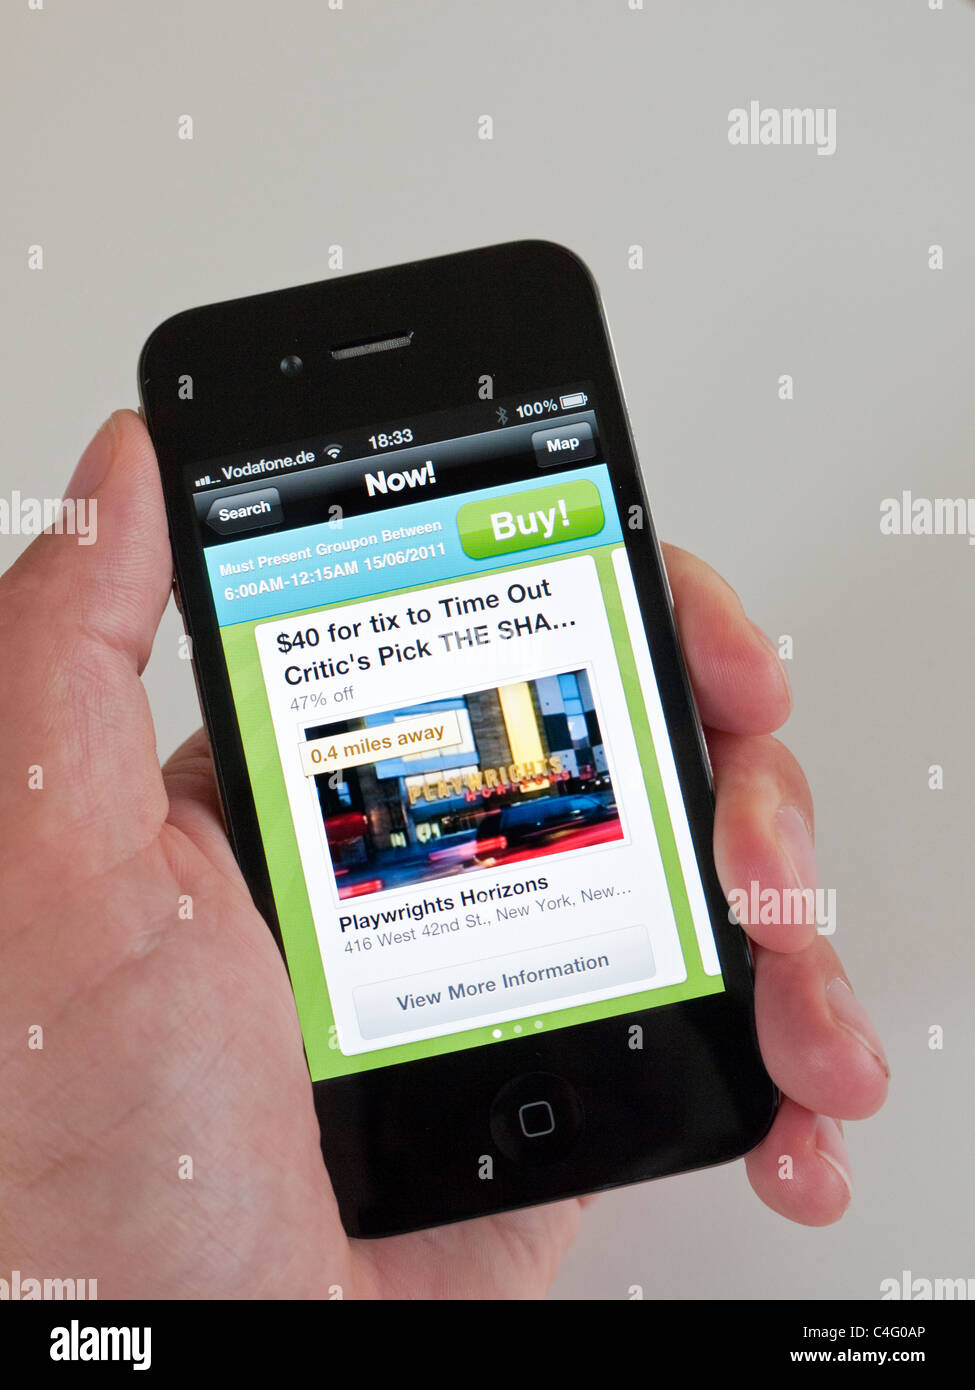 Using Groupon app to search for deal in New York City on iPhone 4G smart phone - Stock Image